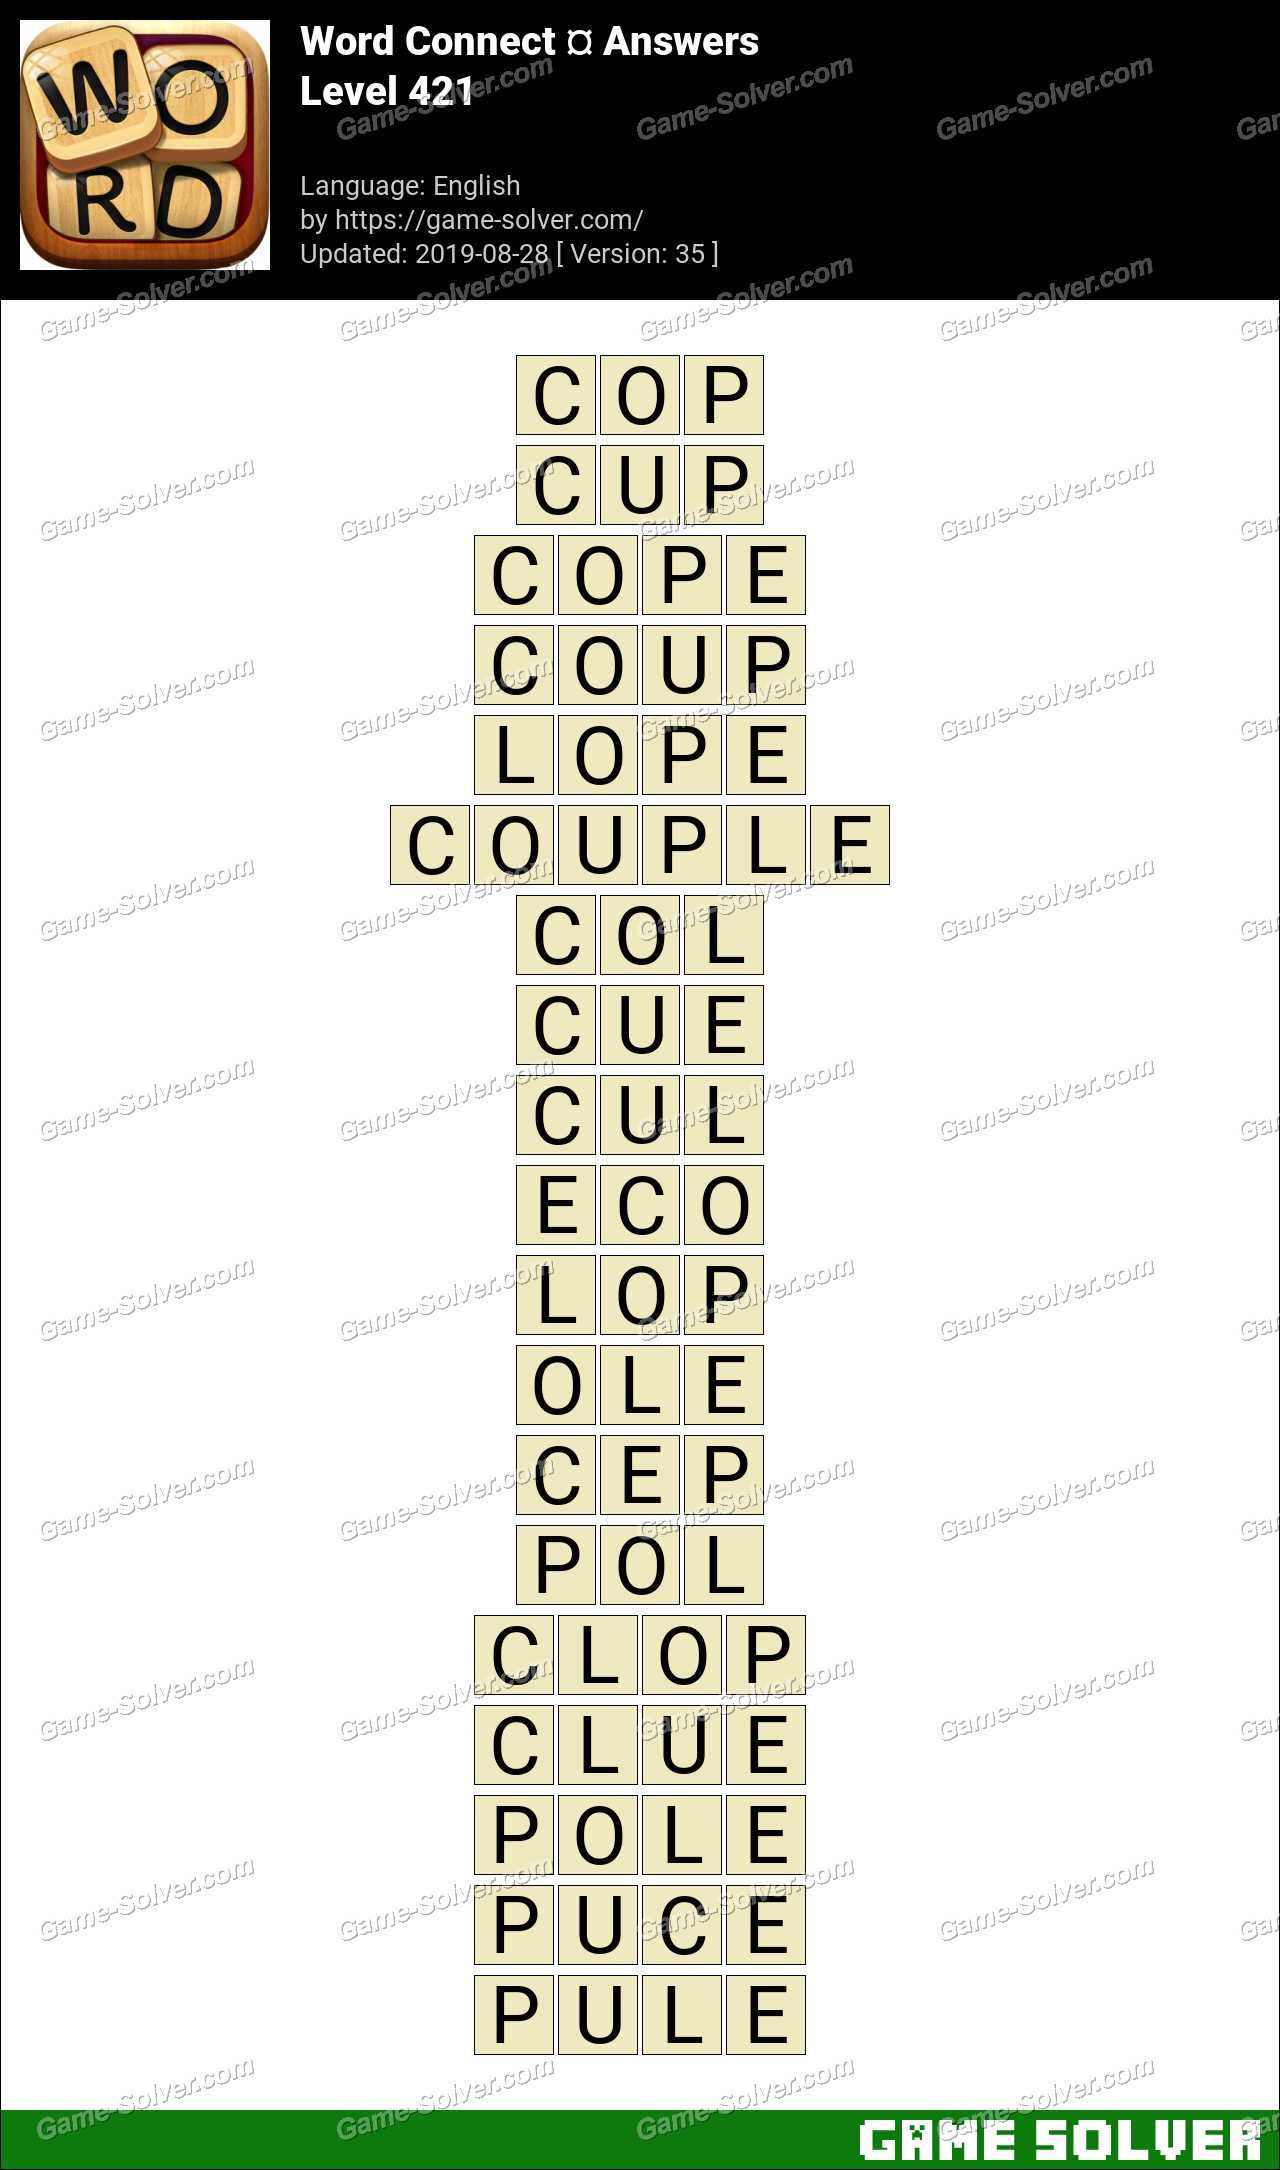 Word Connect Level 421 Answers